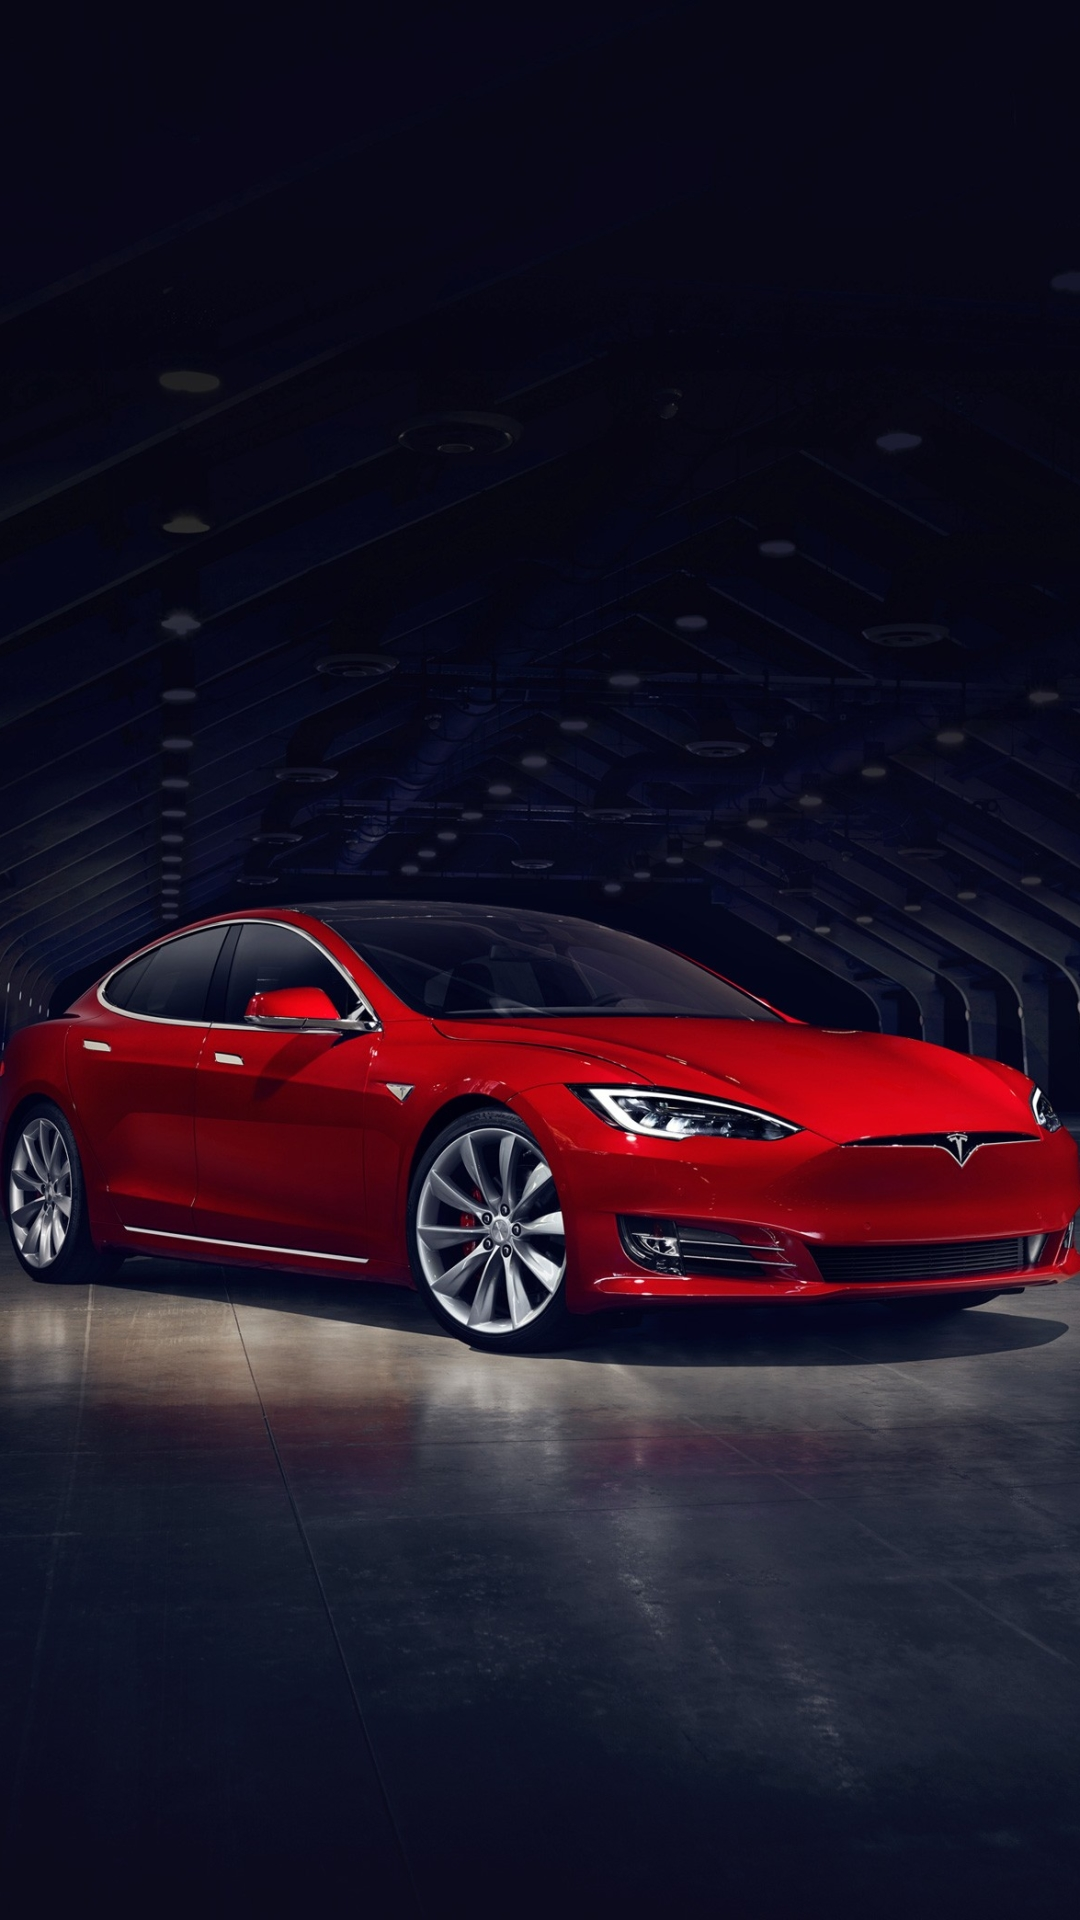 iPhone wallpaper Red Tesla Model S Les 3Wallpapers iPhone du jour (13/02/2018)